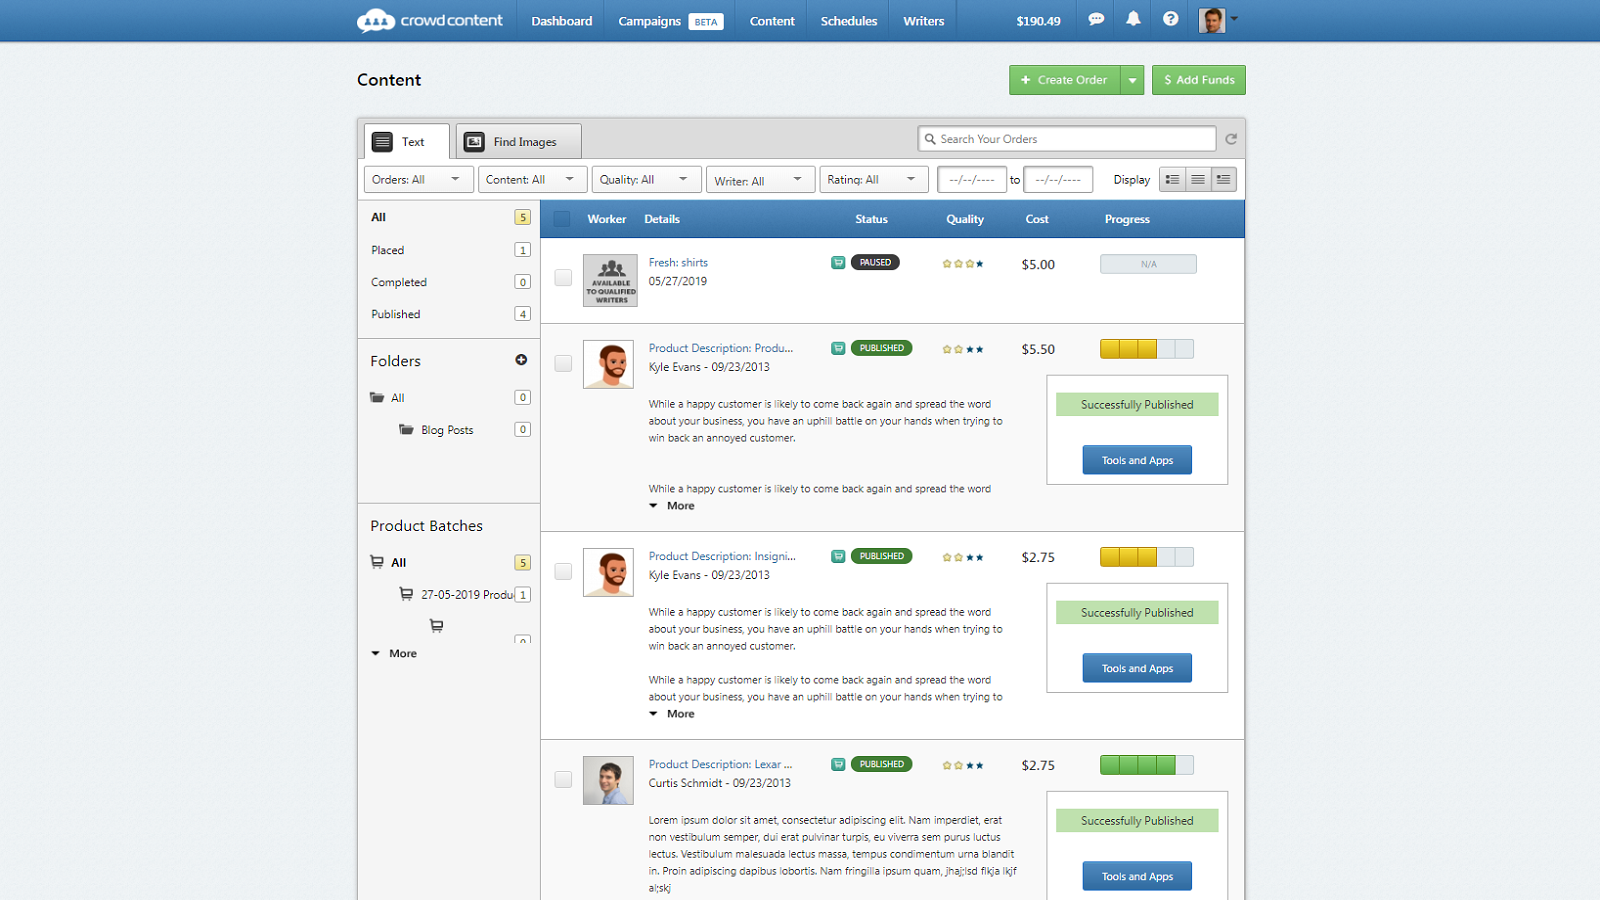 Fully integrated with Shopify, no copying or pasting needed